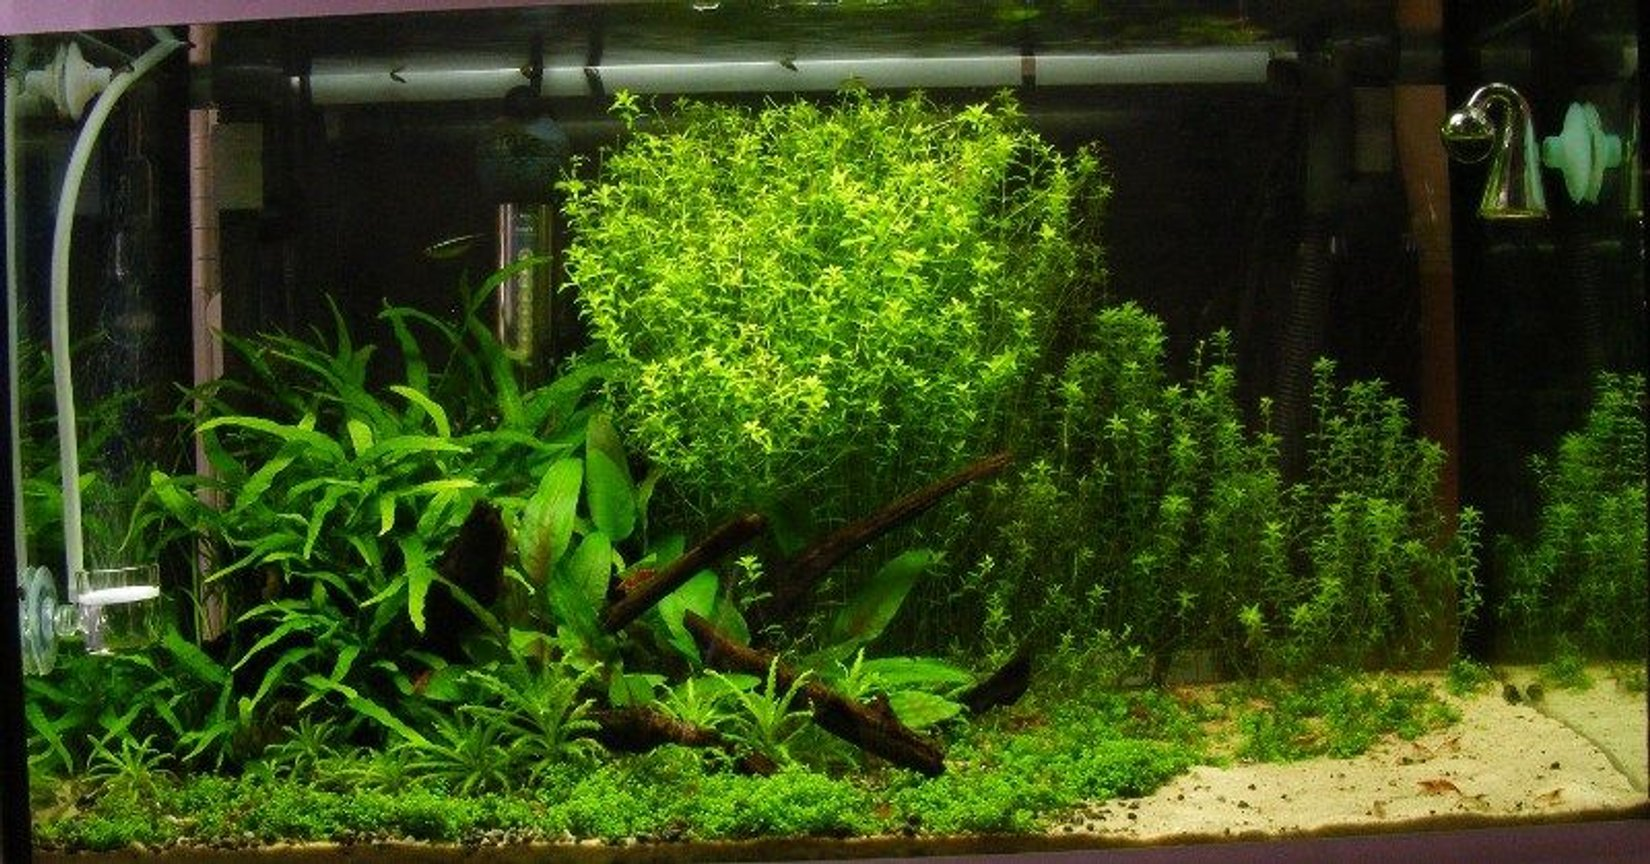 15 gallons planted tank (mostly live plants and fish) - 60 x 30 x 30cm - 60l/ 15g - 36w PC T5 (2.7wpg) - 3ml tropica plant nutrition+ daily - pressurized CO2 via 2kg cannister (35ppm) - fluval 205 external